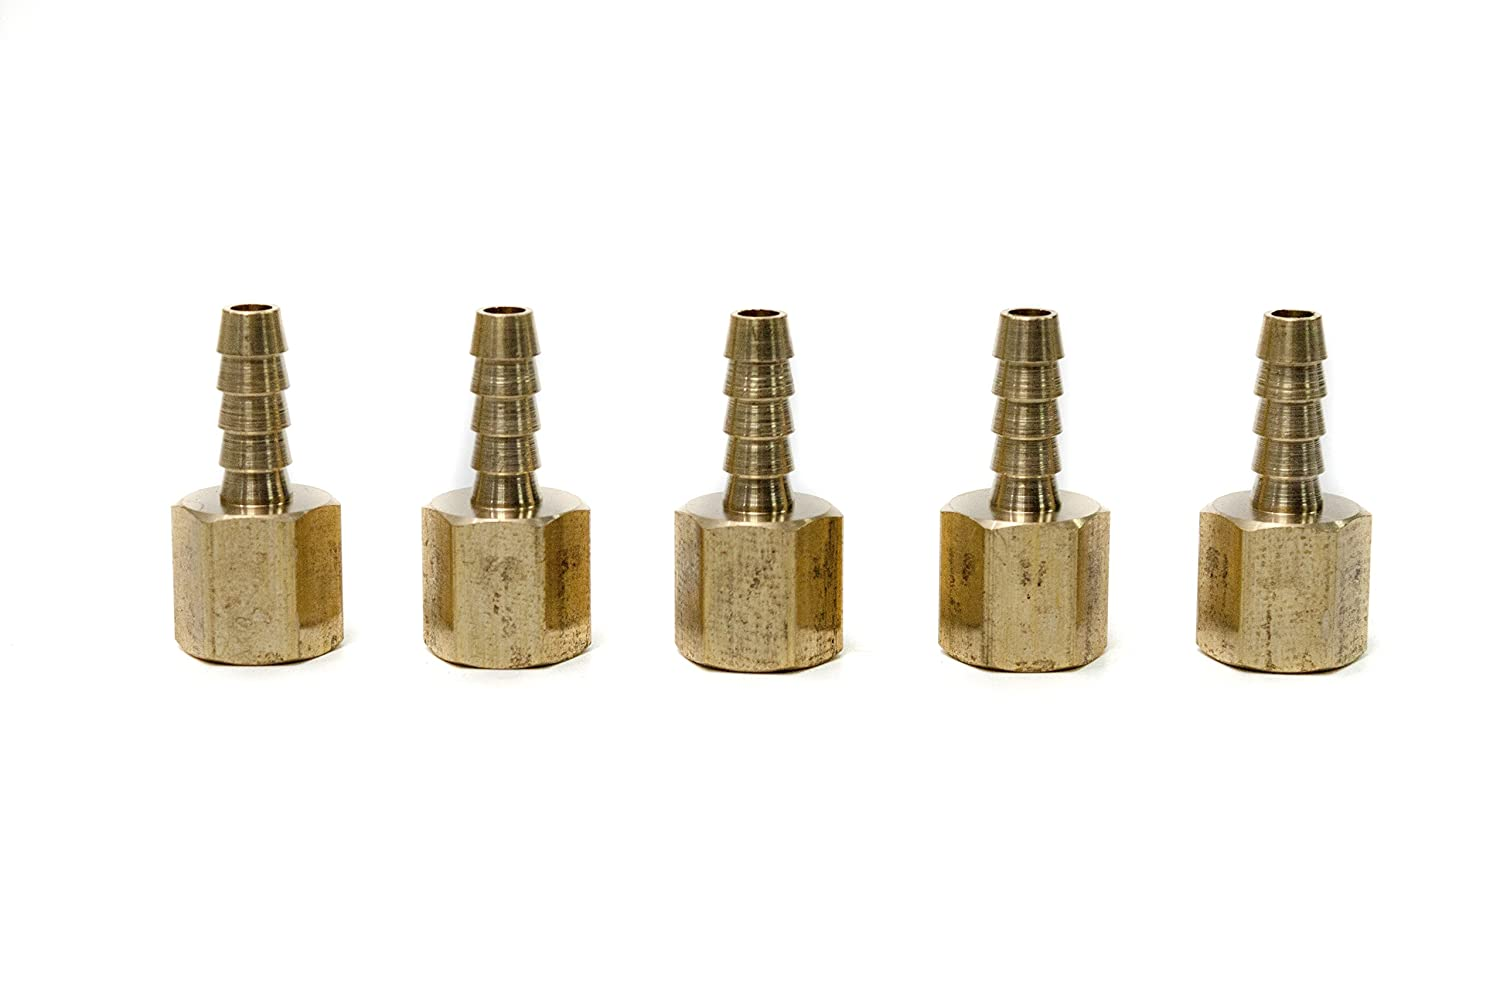 Pack of 5 LTWFITTING Brass Fitting Coupler 1//4 Hose Barb x 1//4 Female NPT Fuel Water Boat